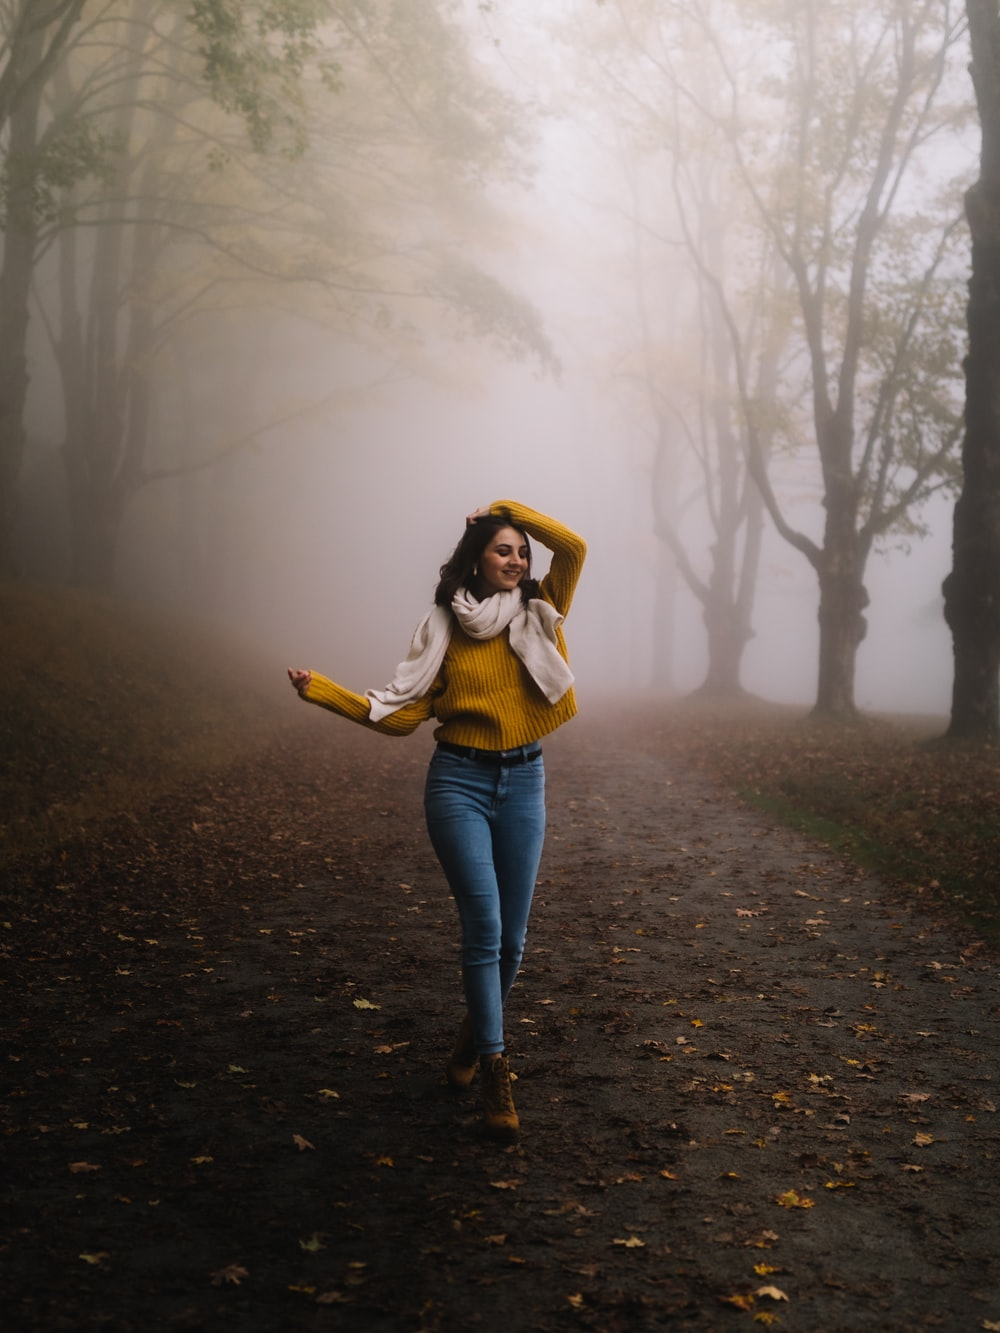 woman walking on road near trees during day